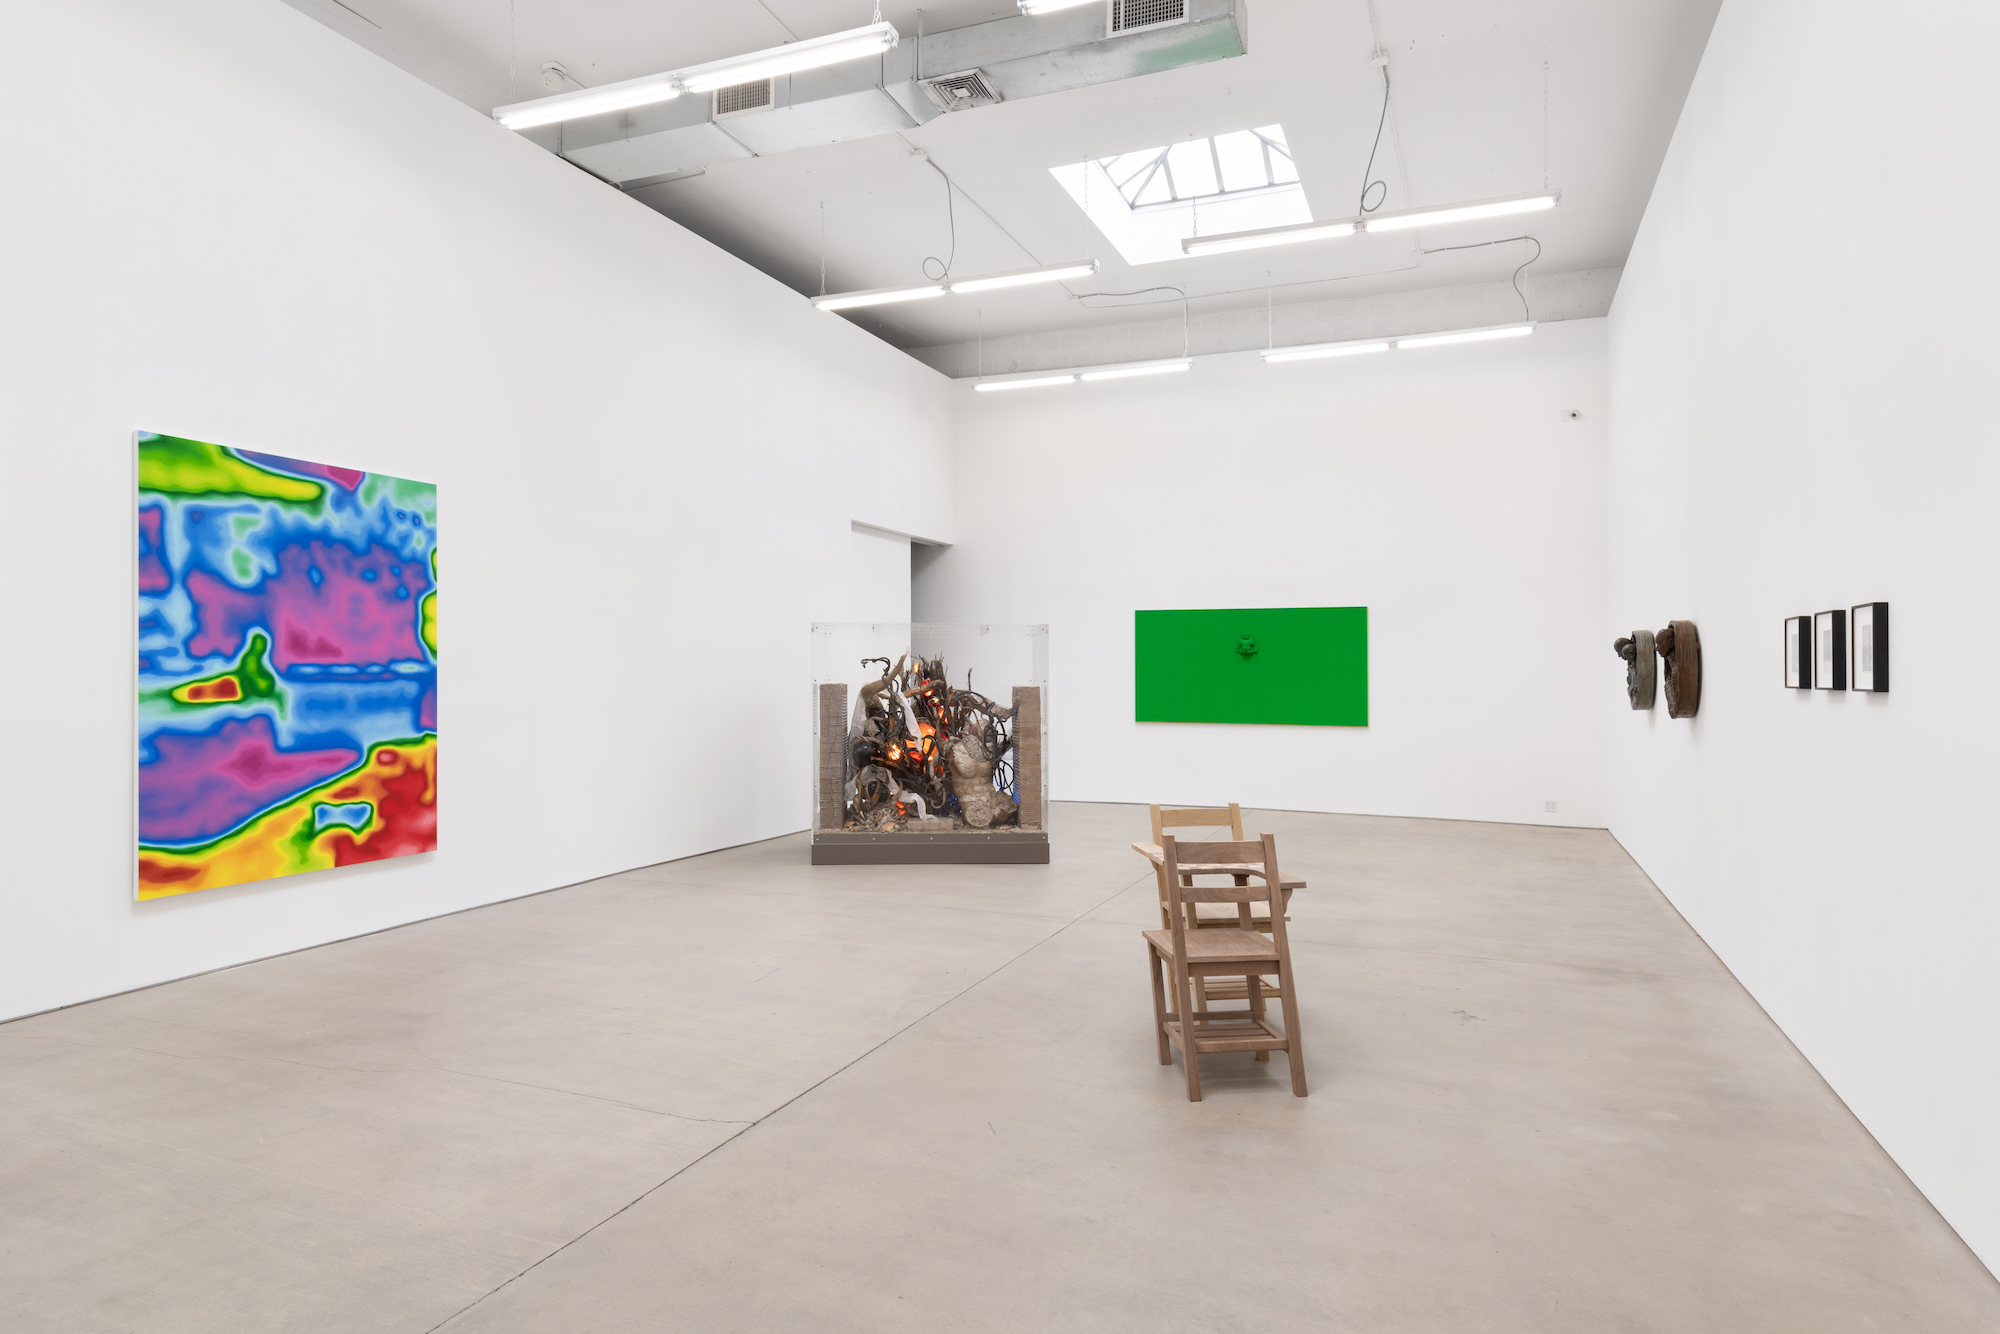 installation view of often vary never change at clearing gallery in nyc featuring painting and sculptural works